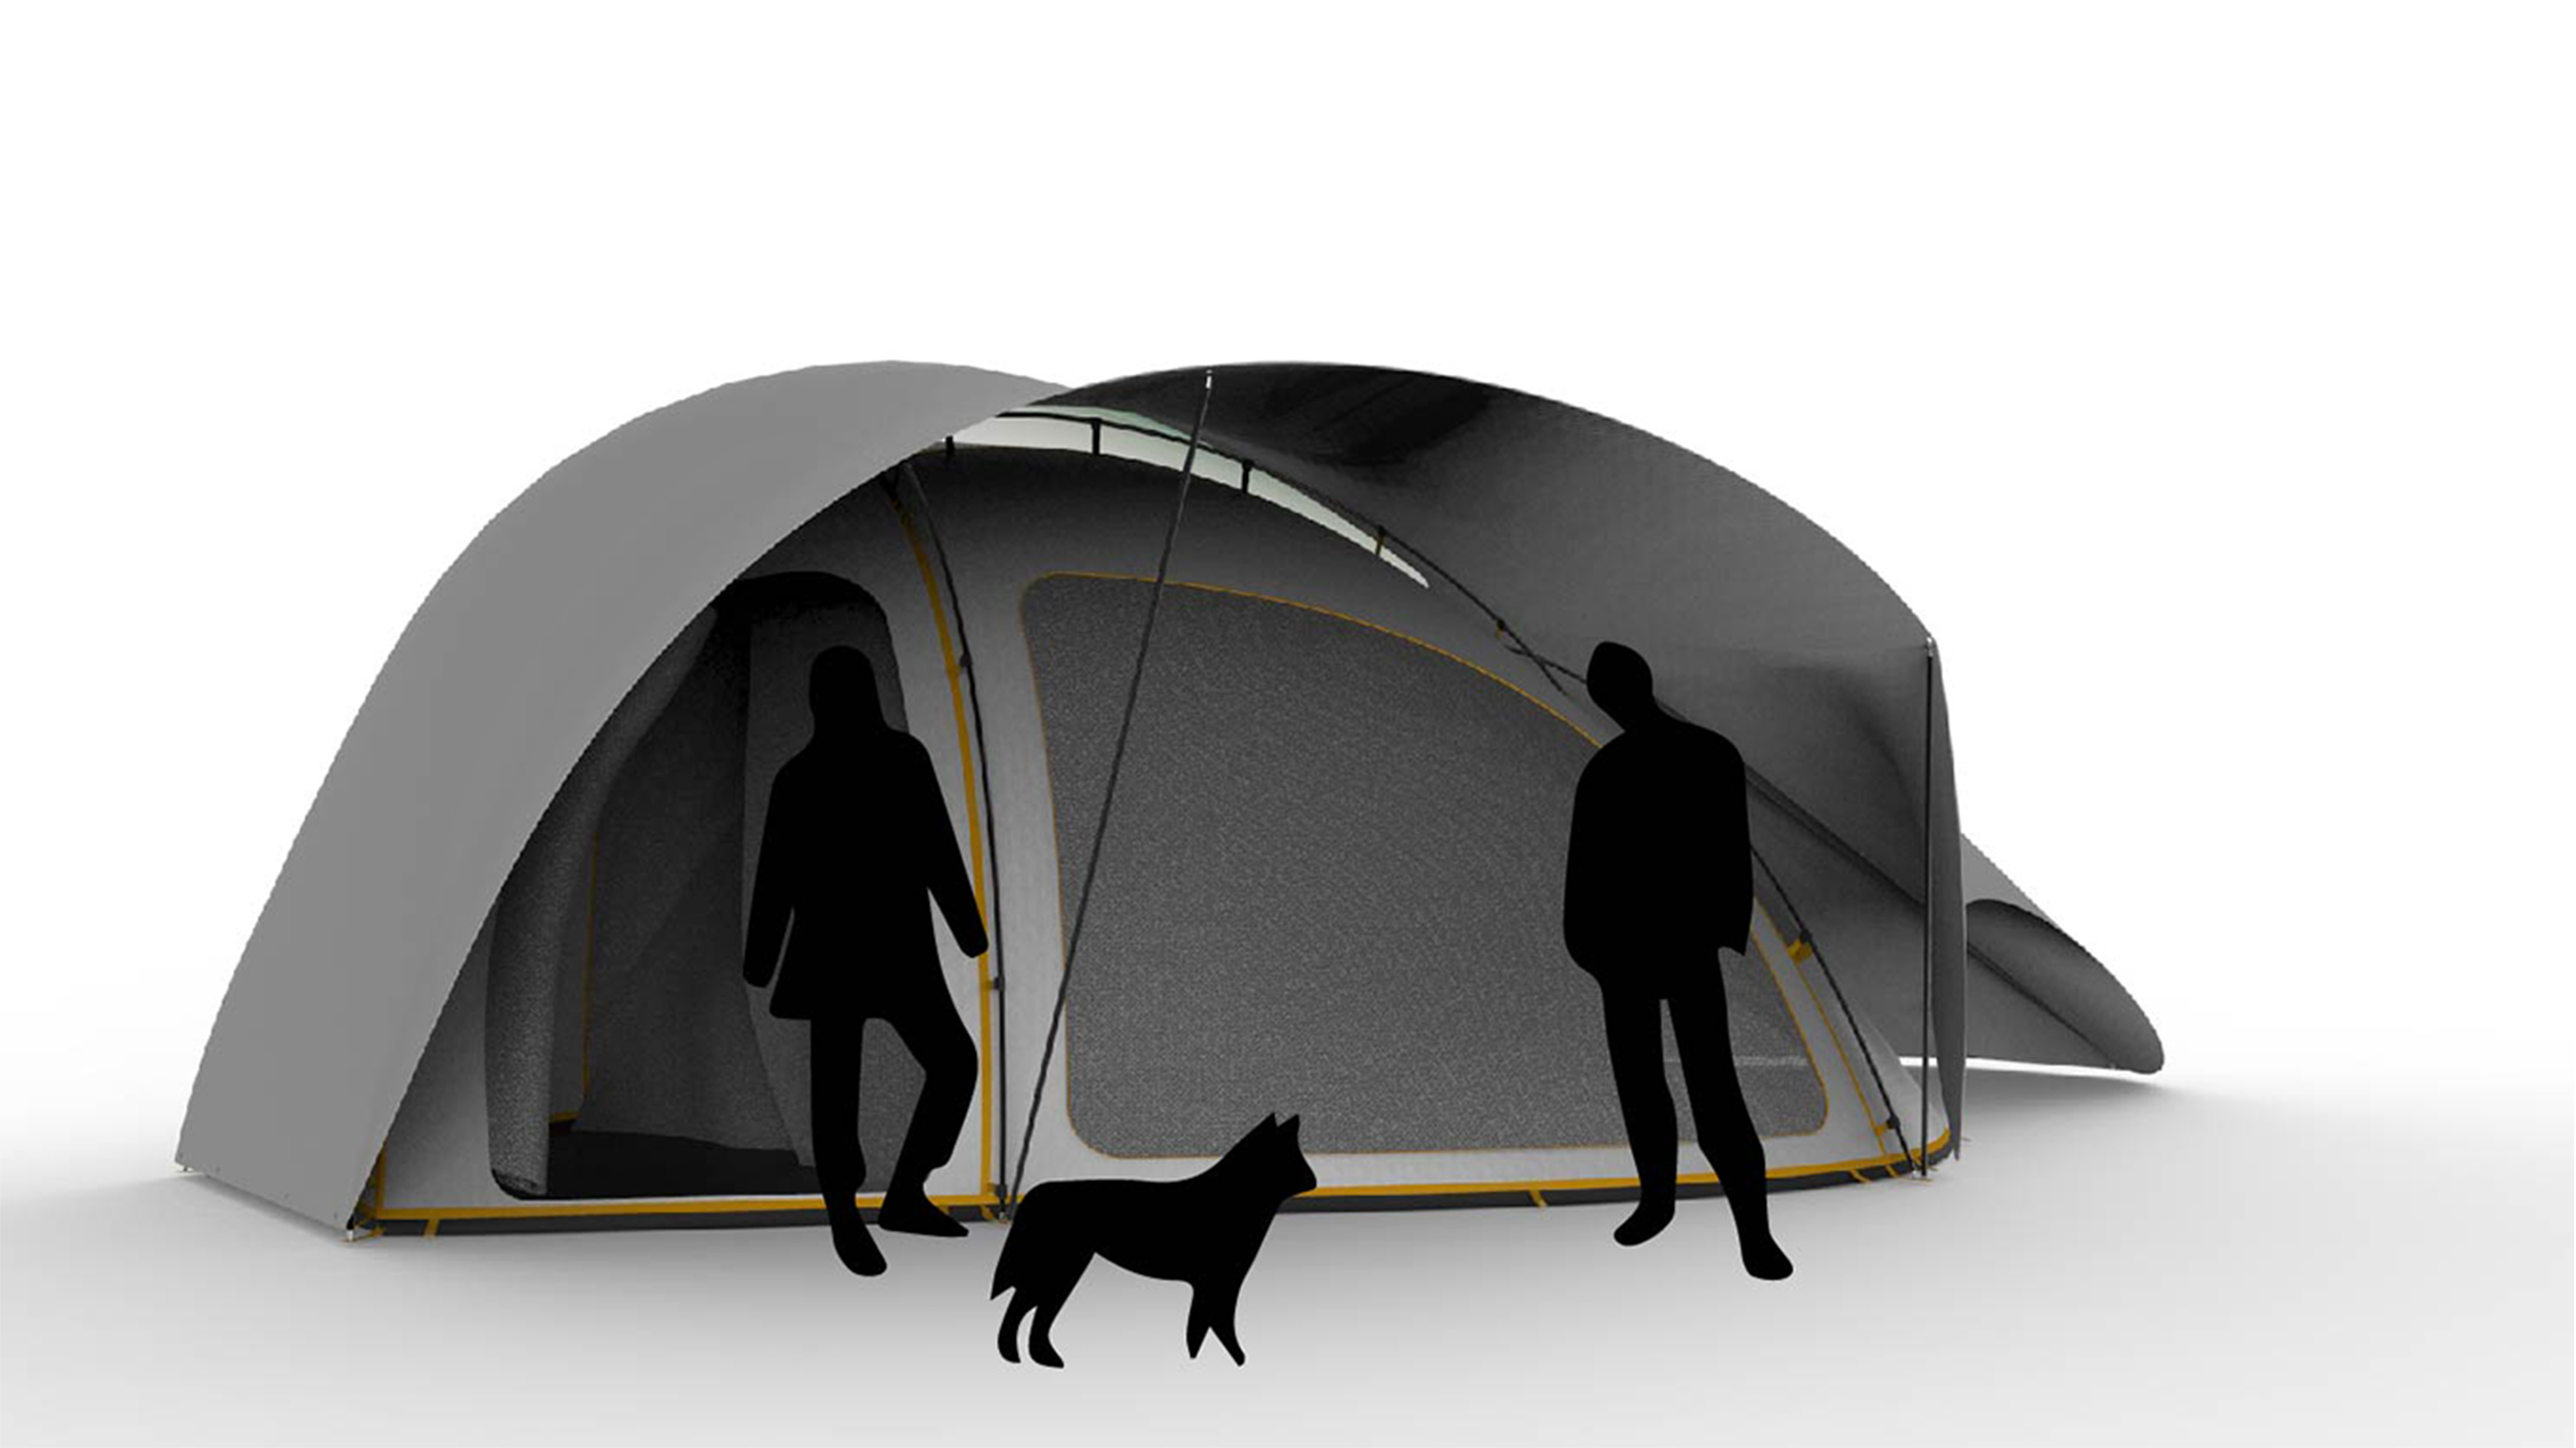 Carapace Shelter